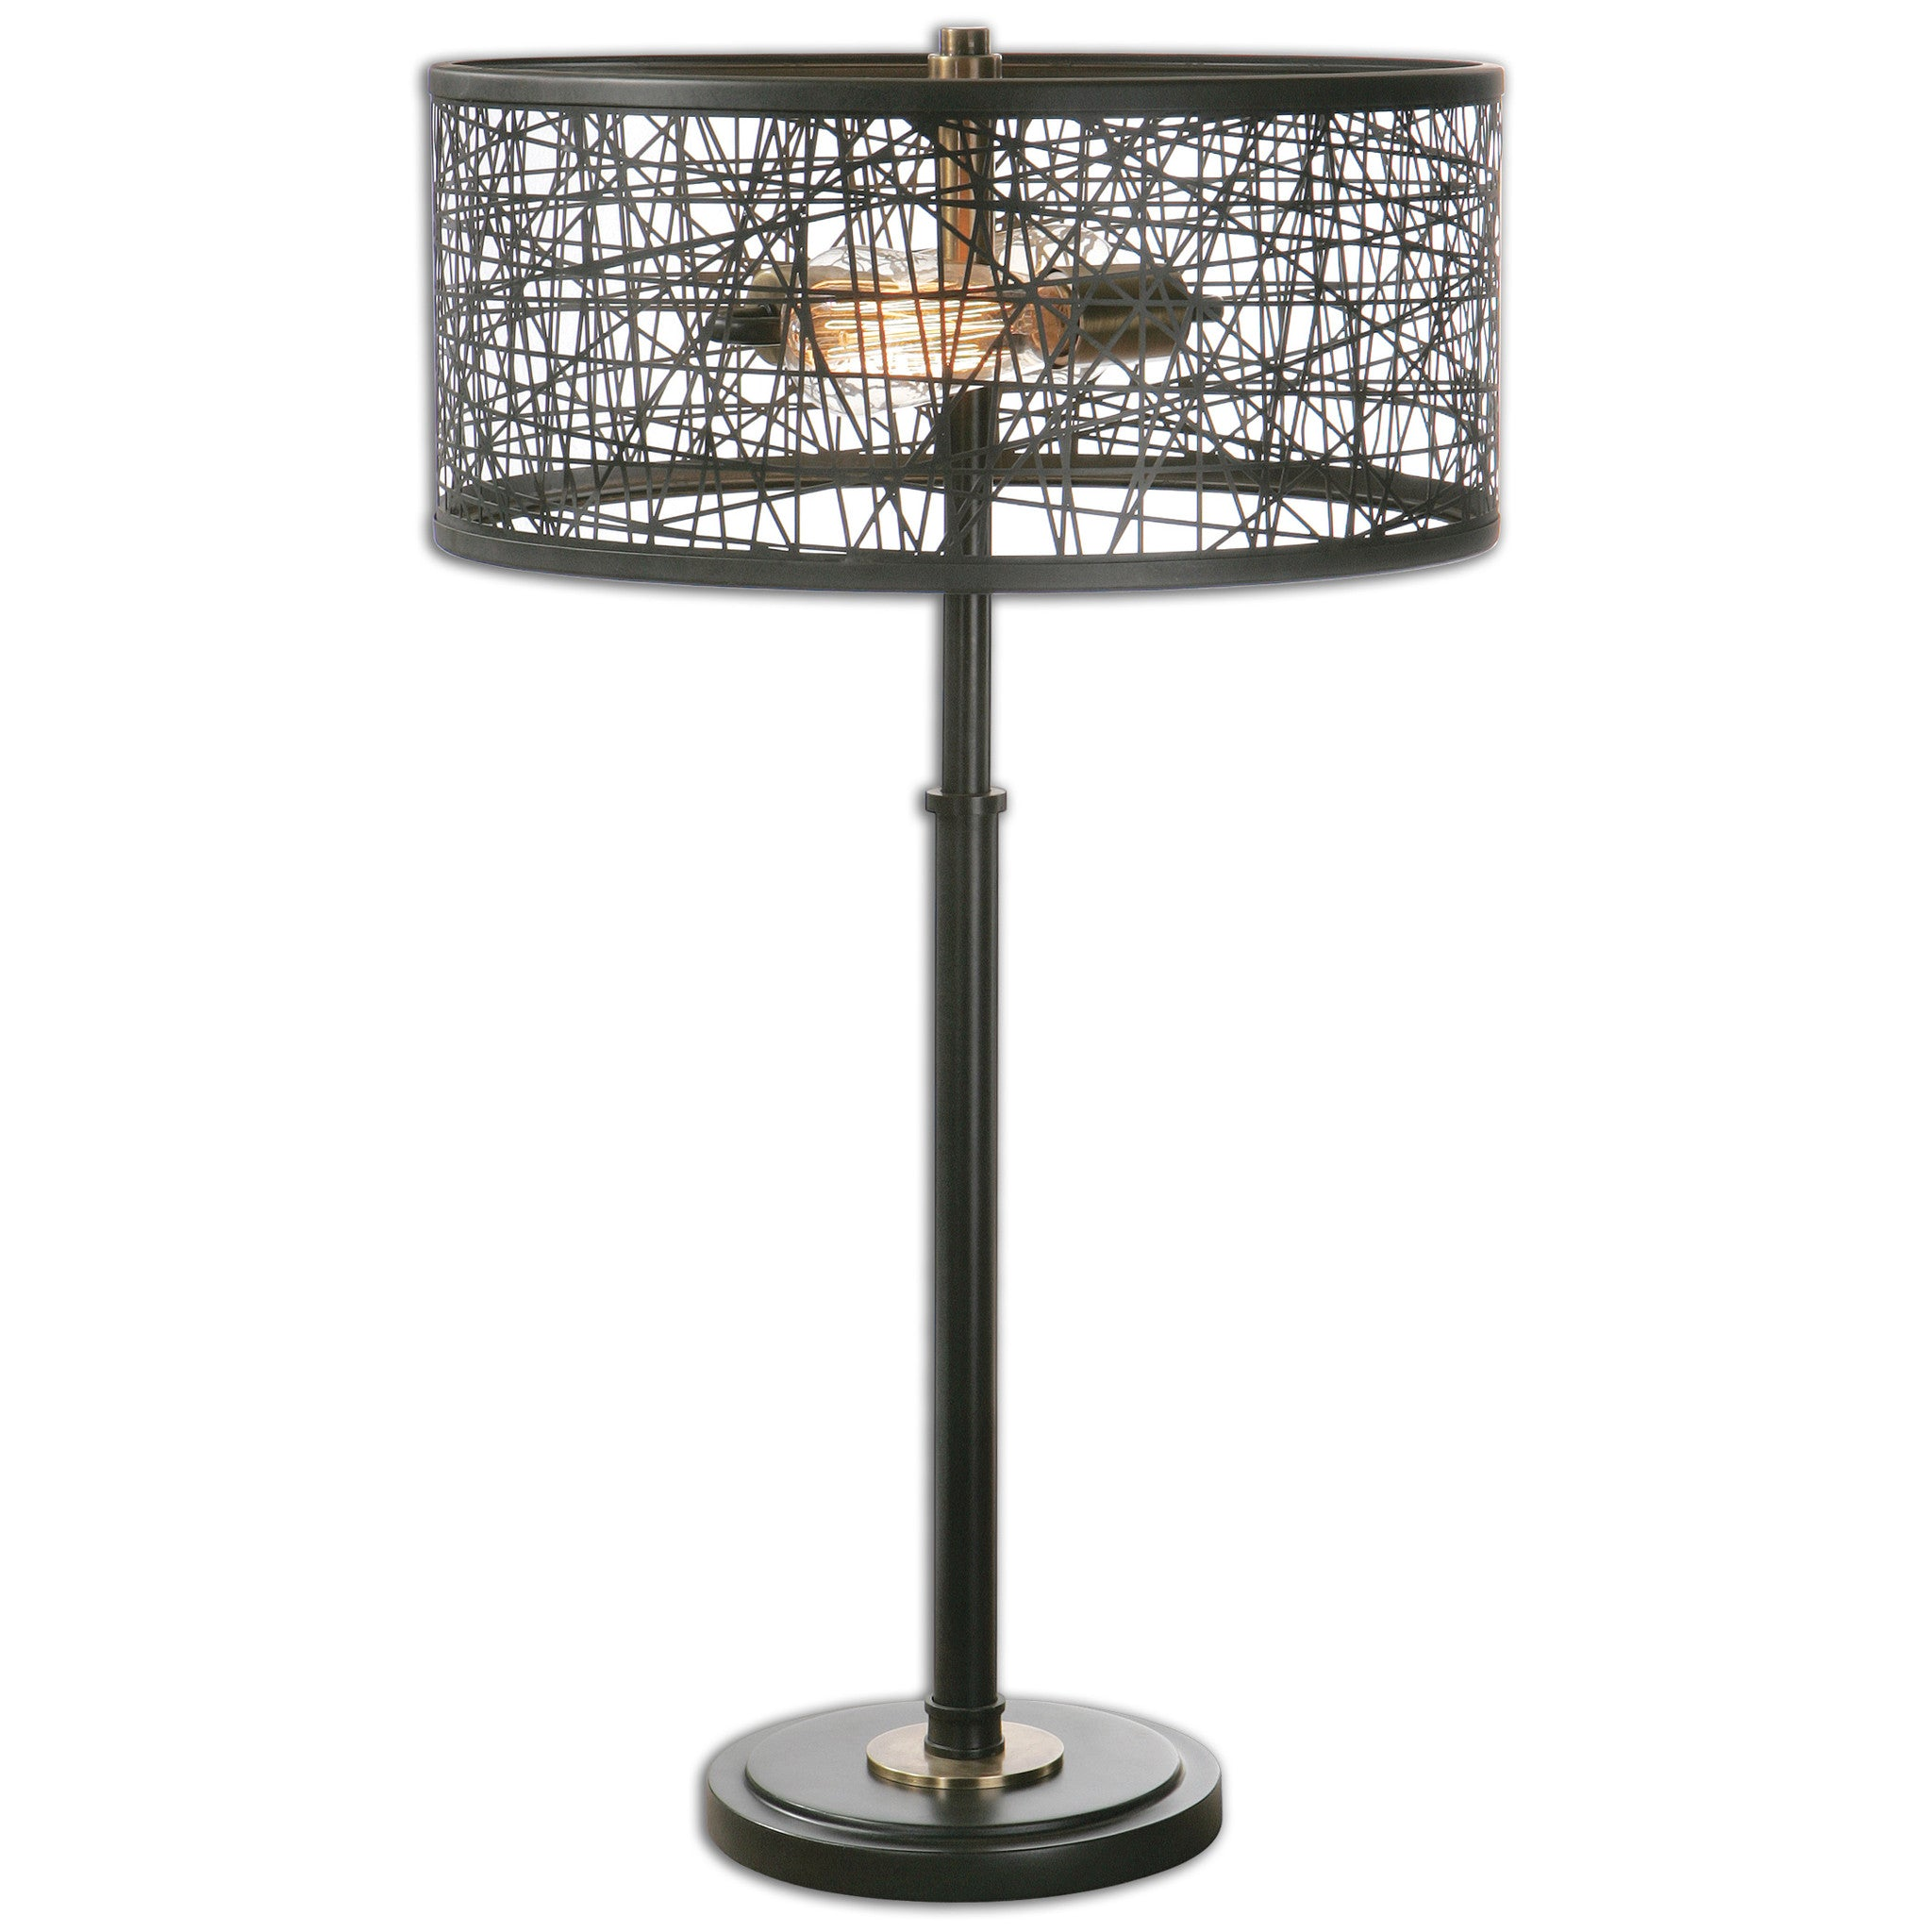 Rustic black metal base and a matching shade made of messed metal strips accented with plated antiqued gold details. Two antique style bulbs included.